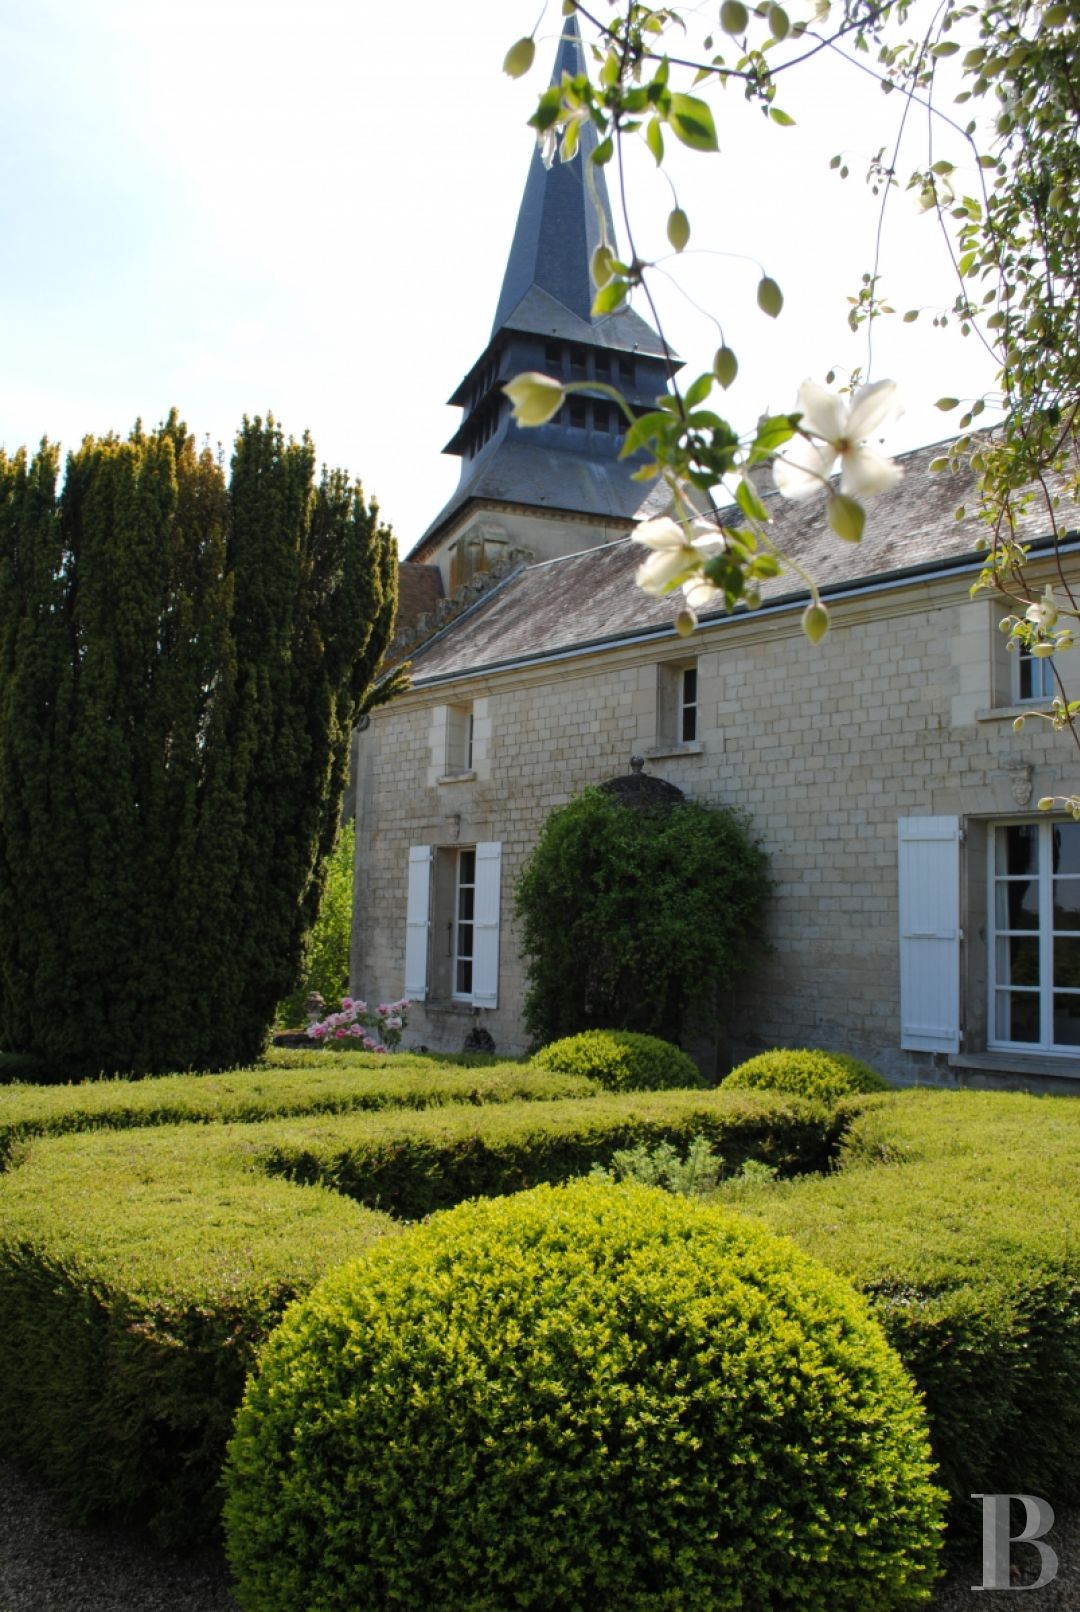 manoirs a vendre picardie gentilhommiere 16eme - 2 zoom